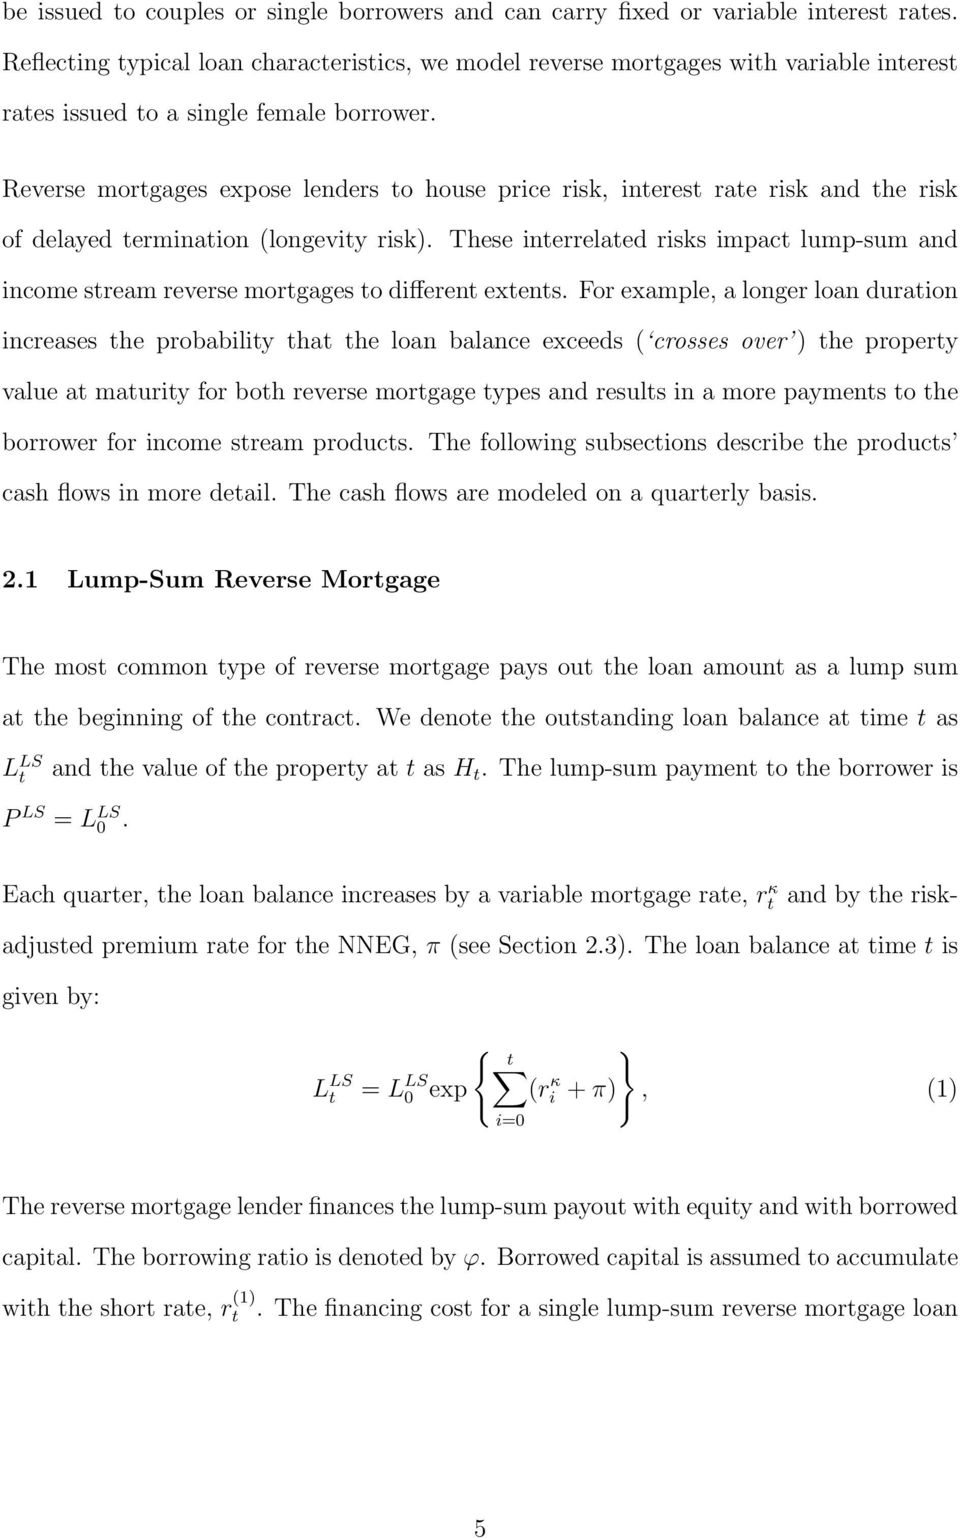 Reverse morgages expose lenders o house price risk, ineres rae risk and he risk of delayed erminaion (longeviy risk).